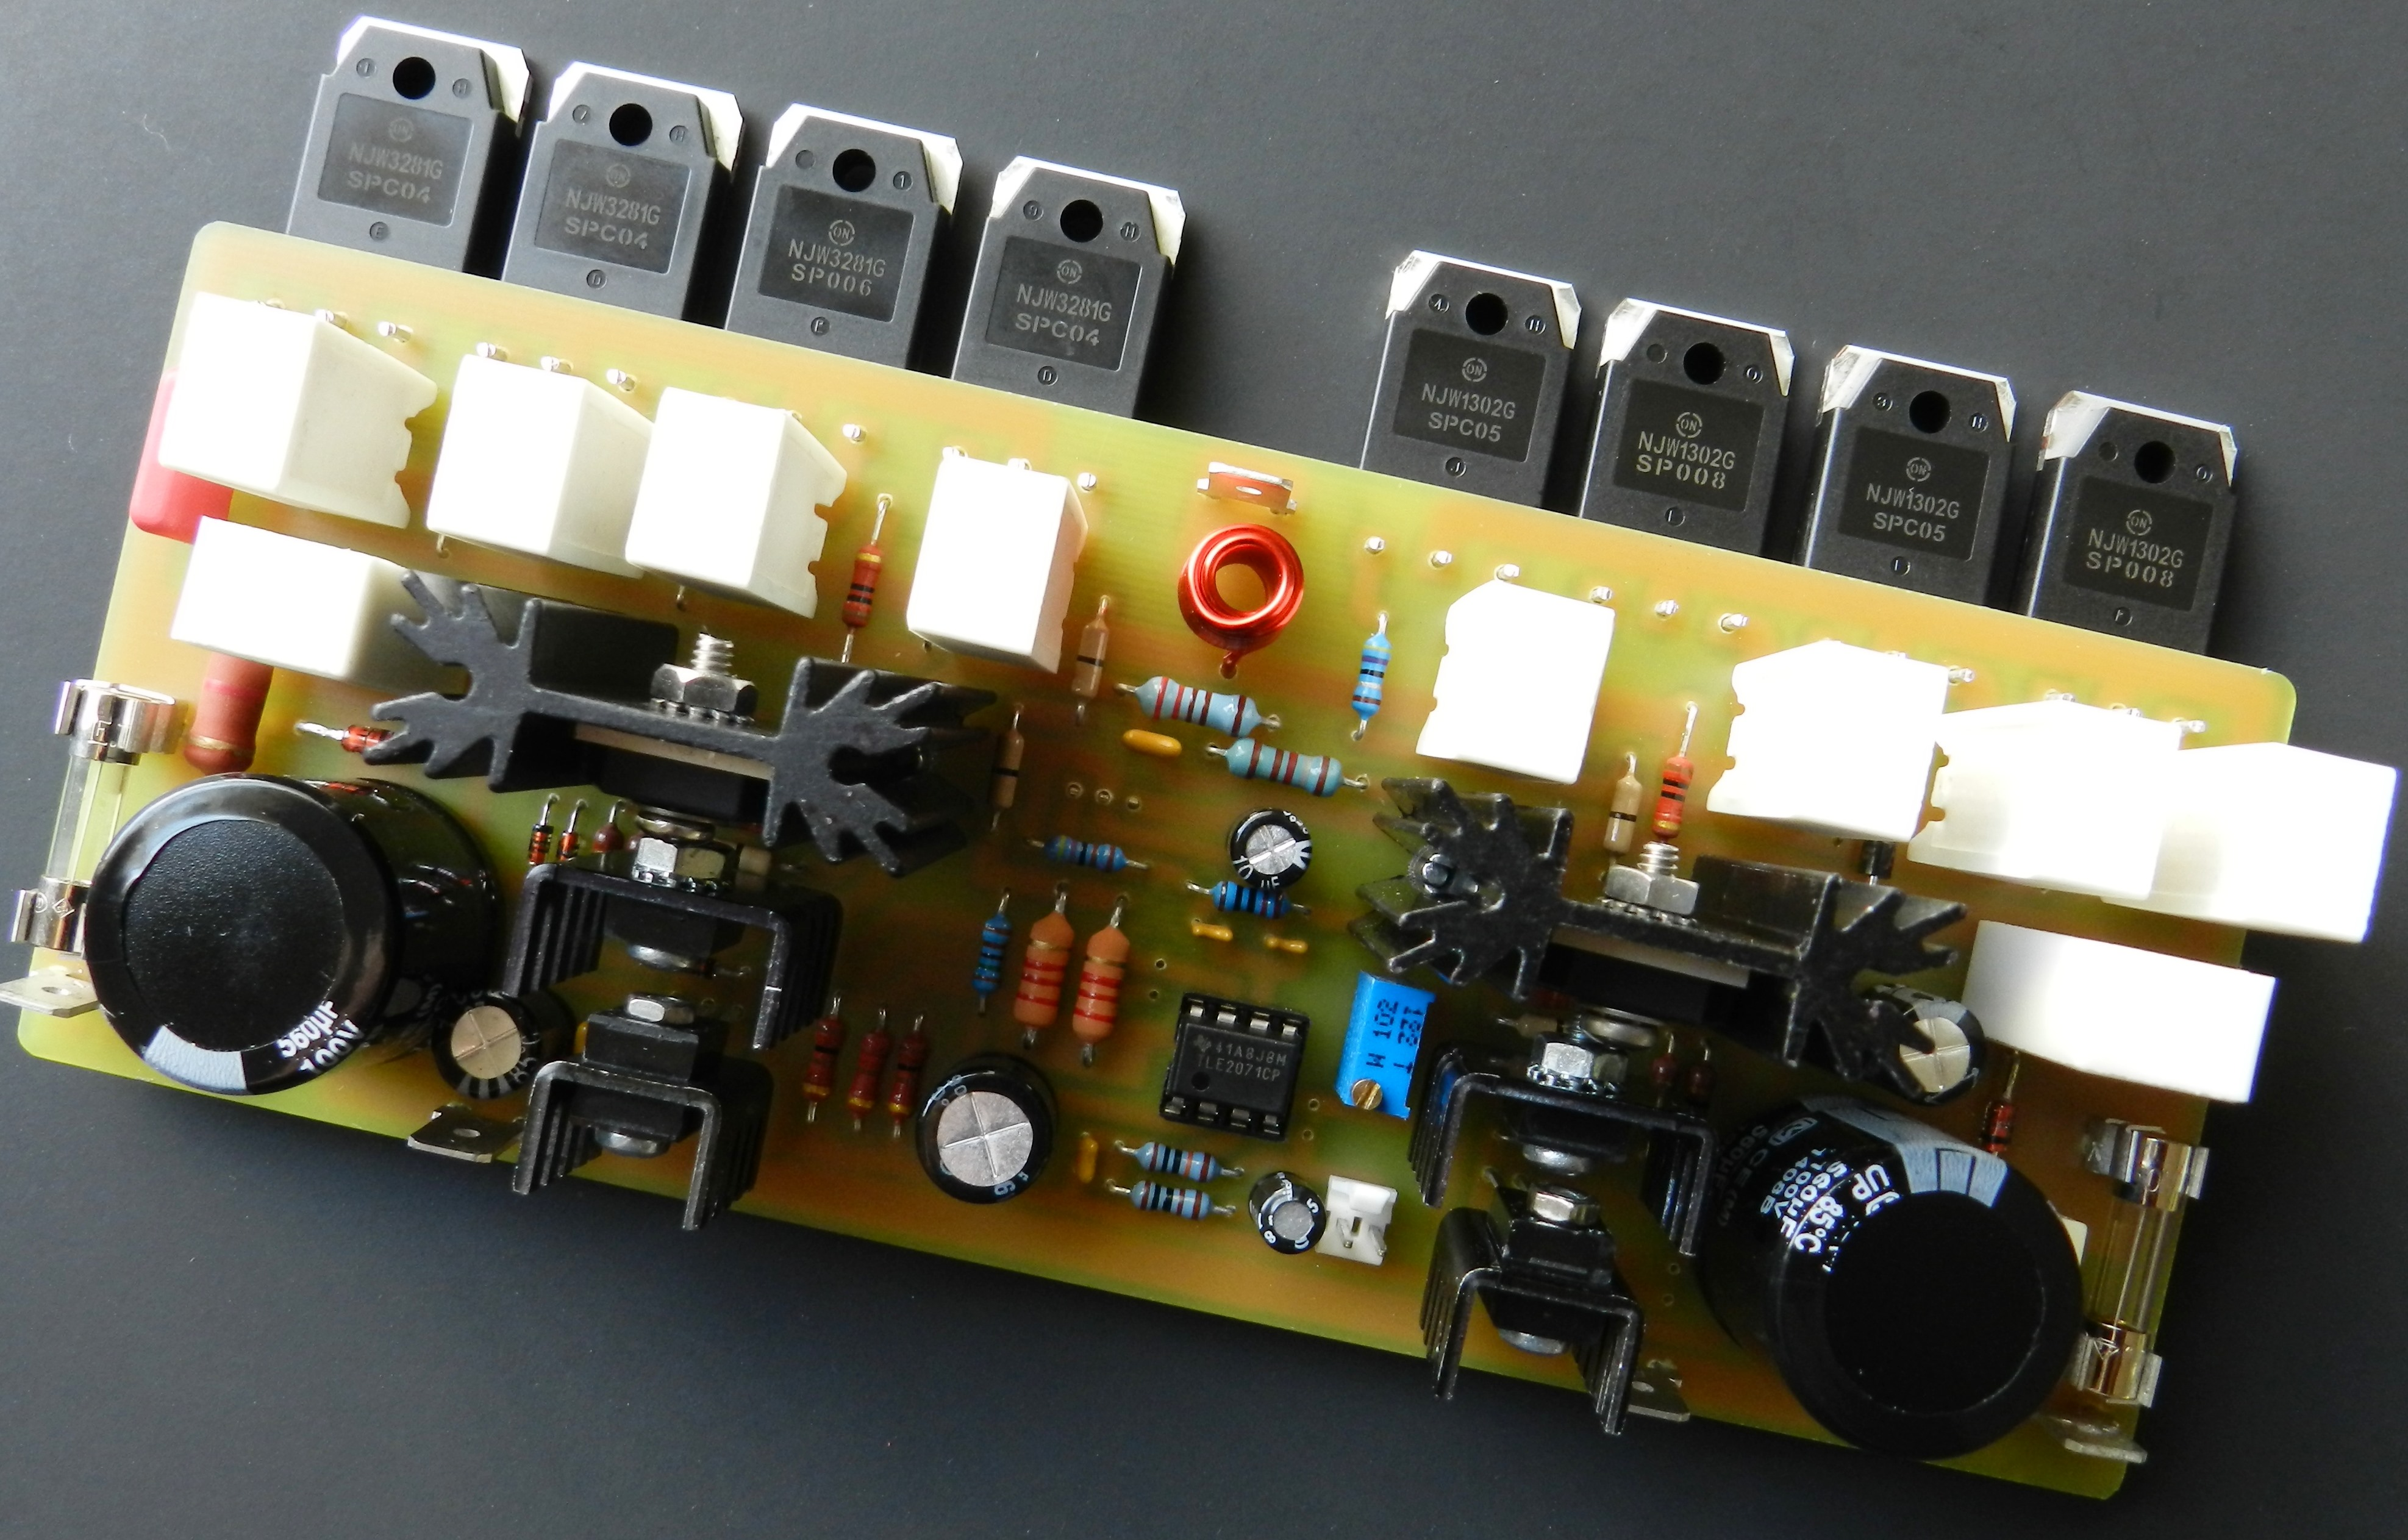 Project 63 Buildaudioamps Audio Generators Projects Circuits 9 Is The Second In Series Of Power Amplifiers Which A Low Noise High Speed Jfet Input Operational Amplifier Used At Front End